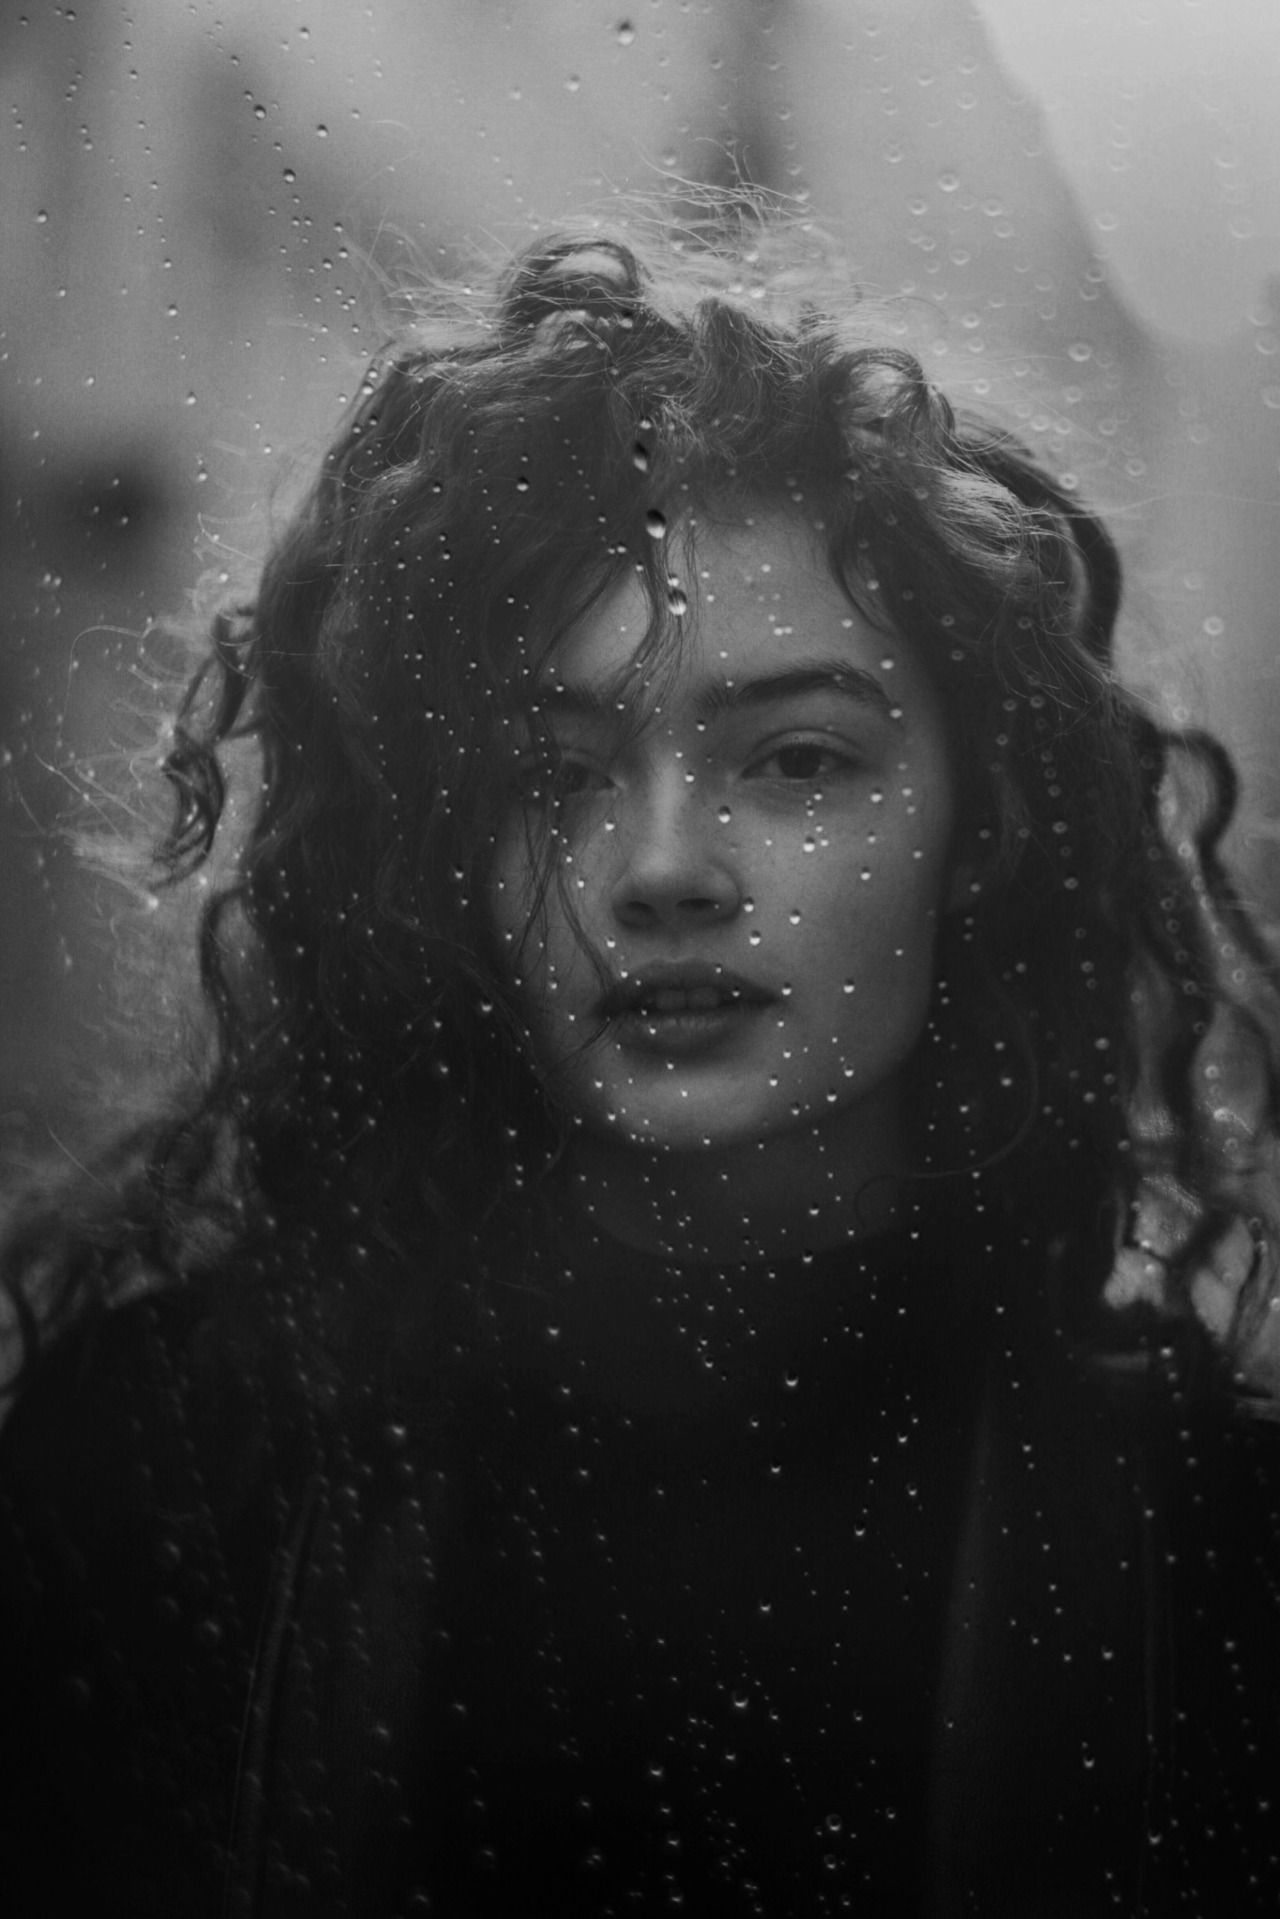 Beautiful rain spattered black and white portrait from one of my